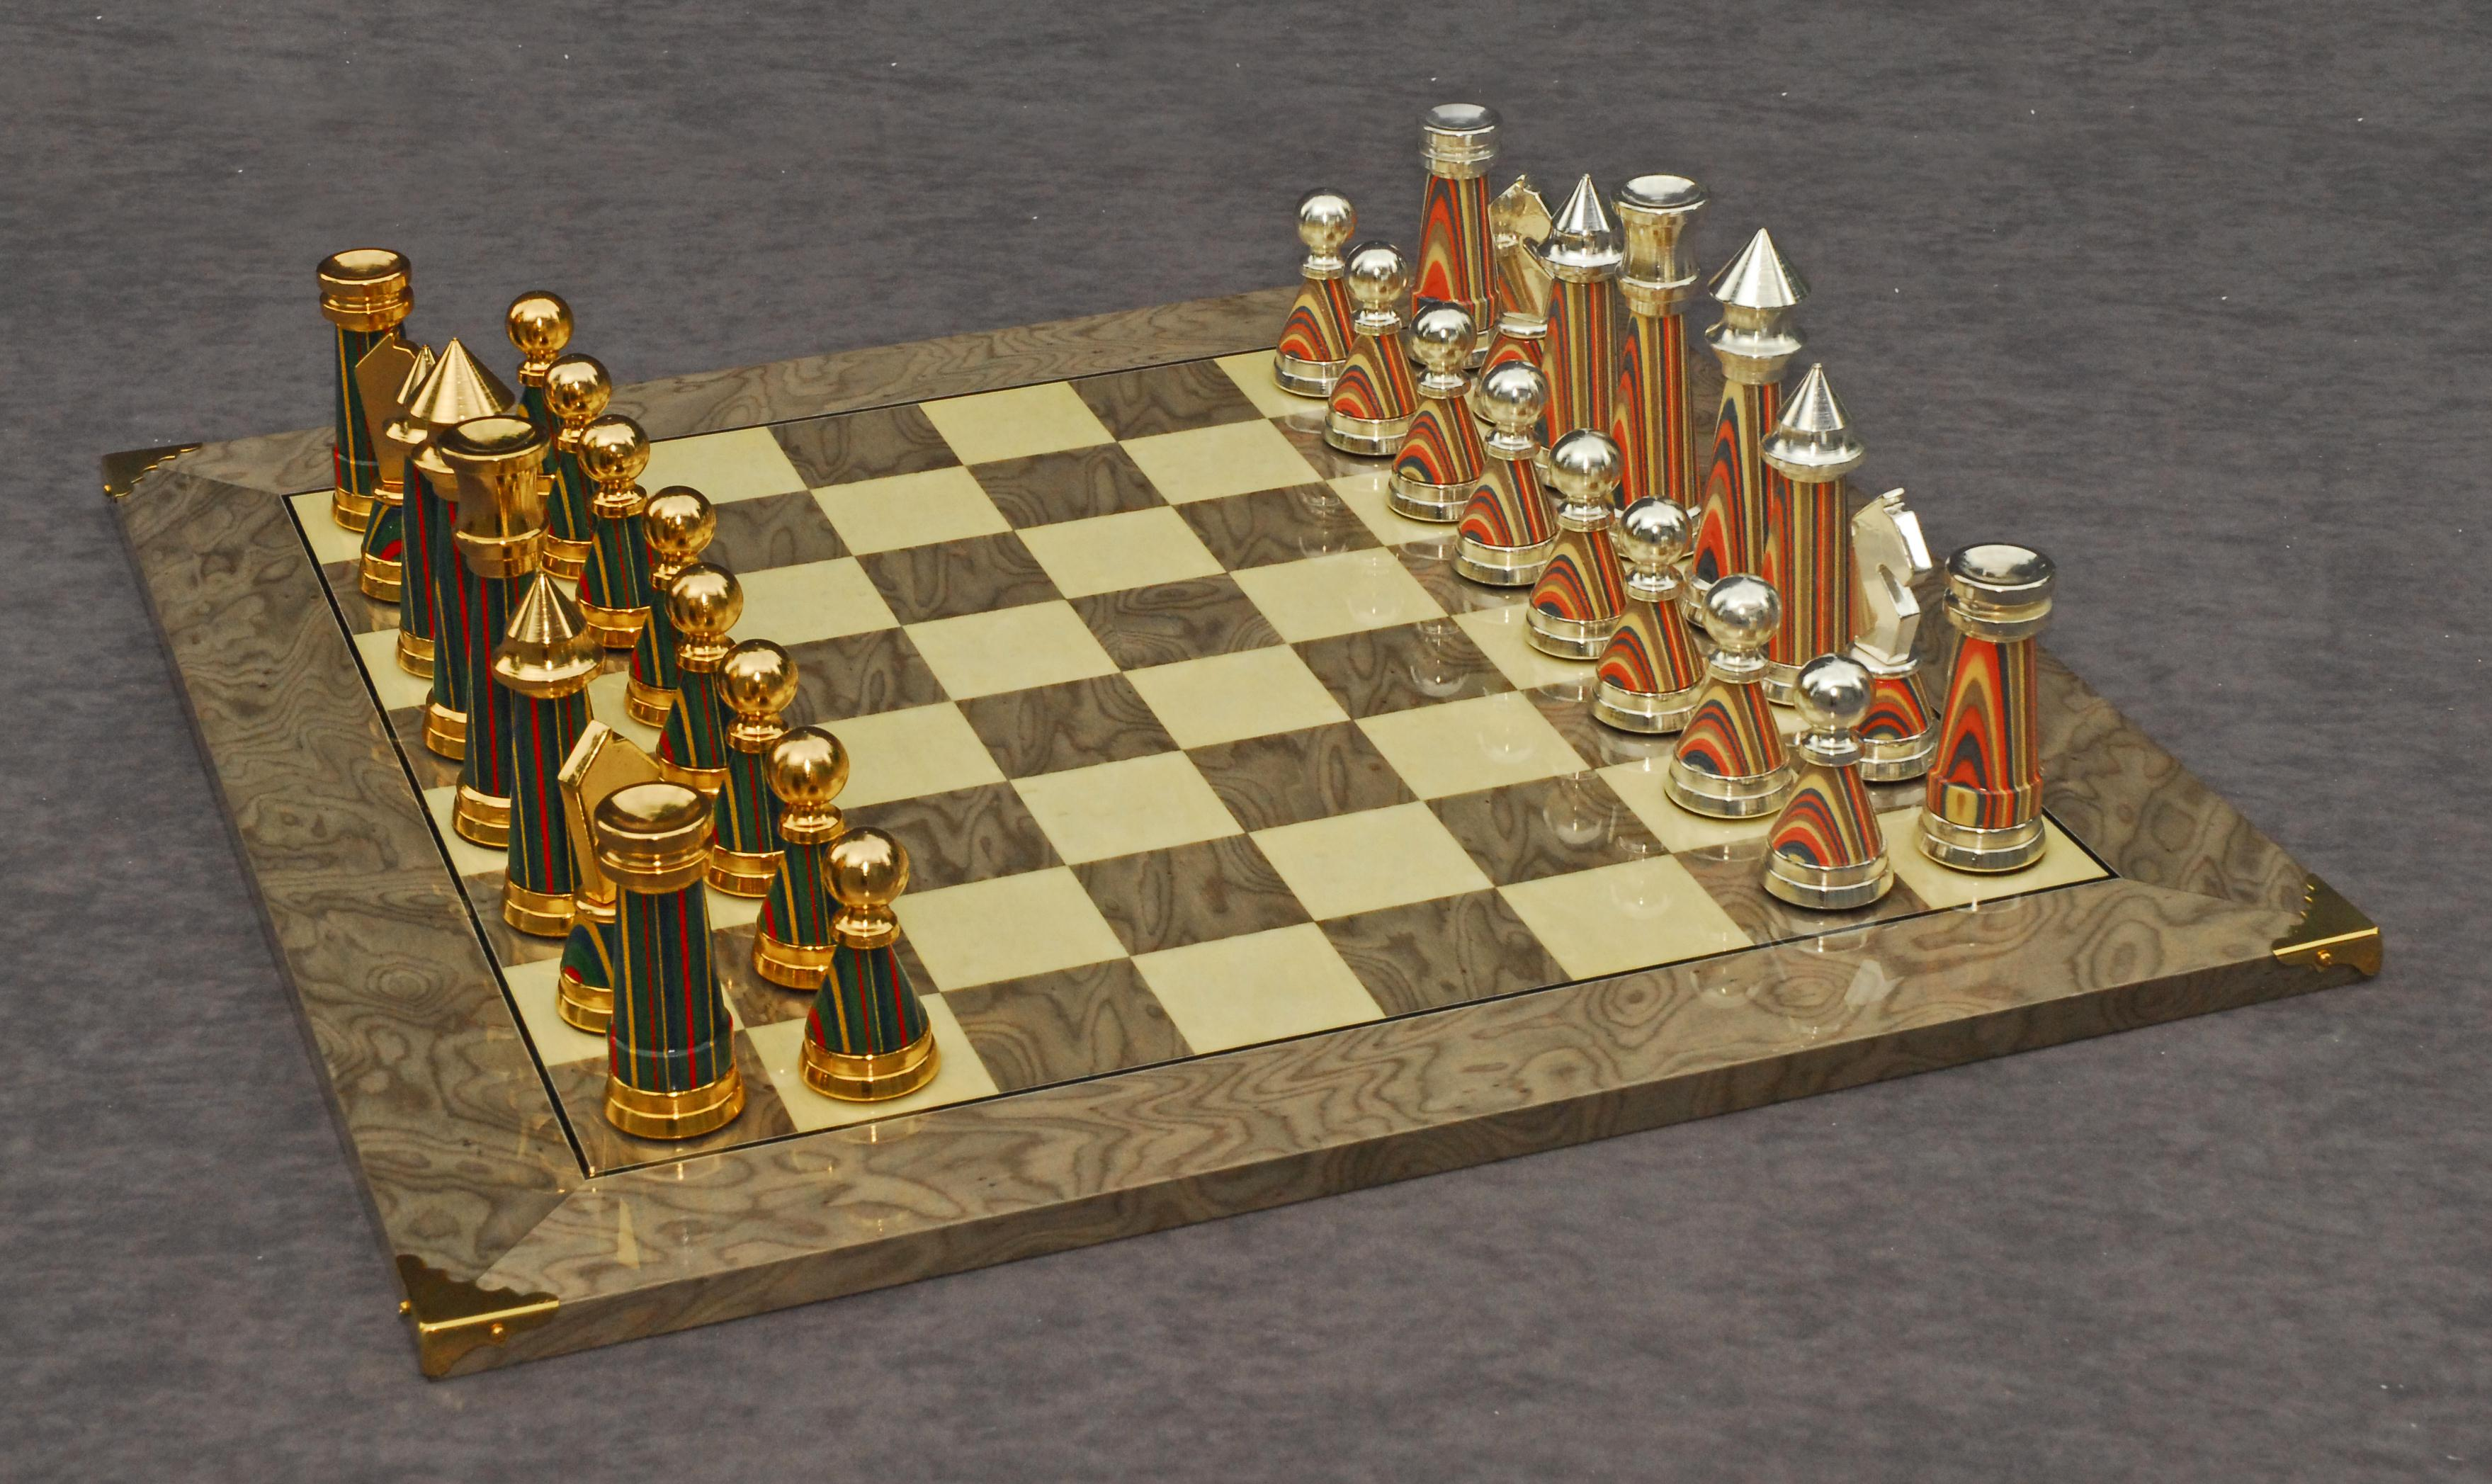 The Sophisticated Chessmen And Superior Chess Board by Cambor Games